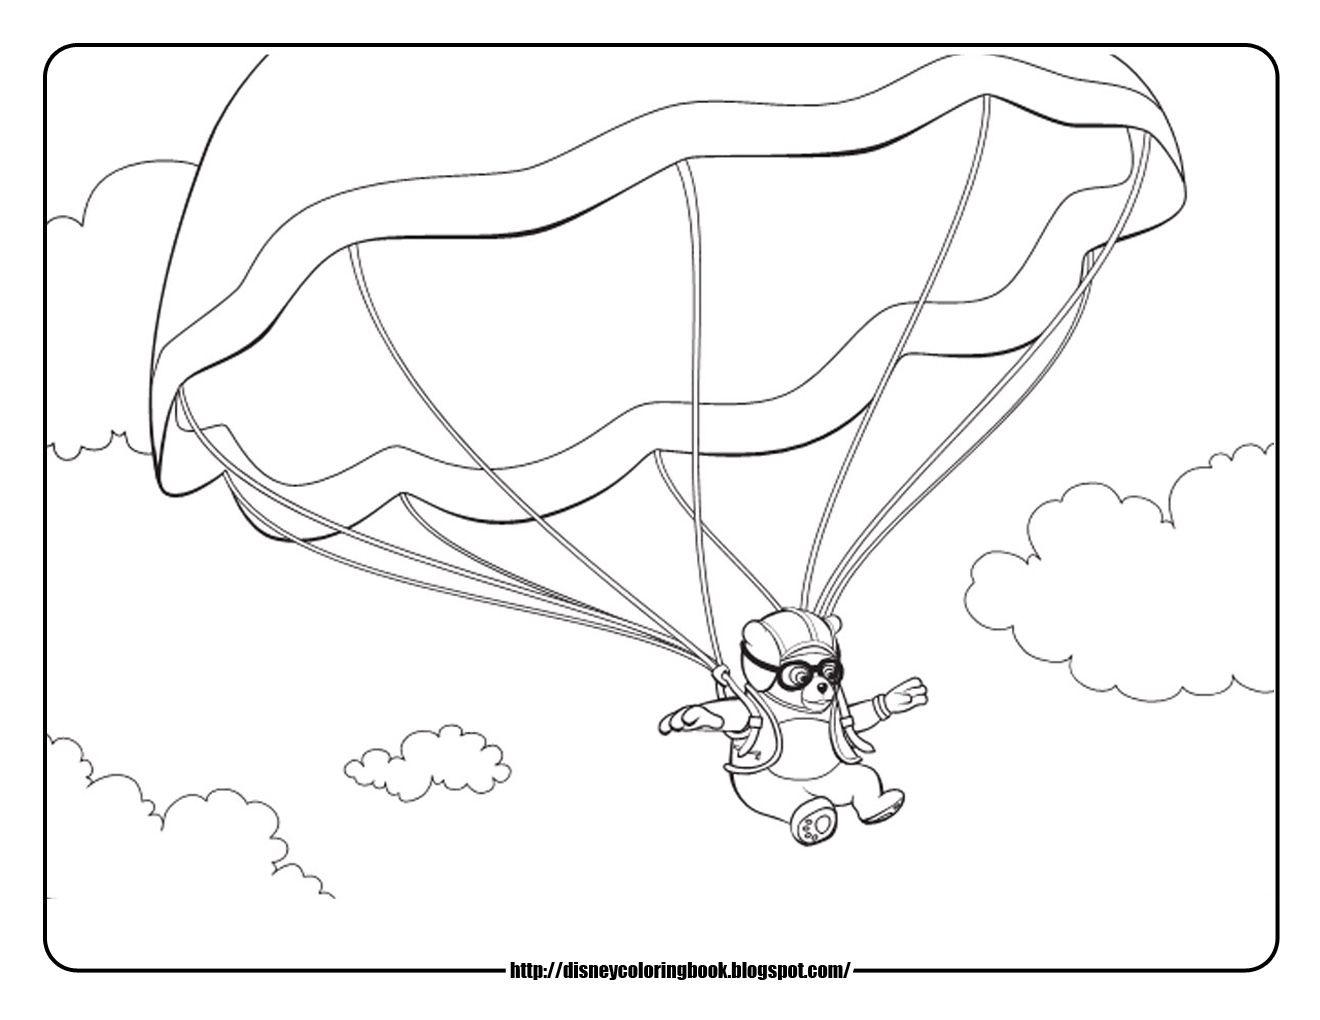 Disney Coloring Pages and Sheets for Kids: Special Agent Oso ...